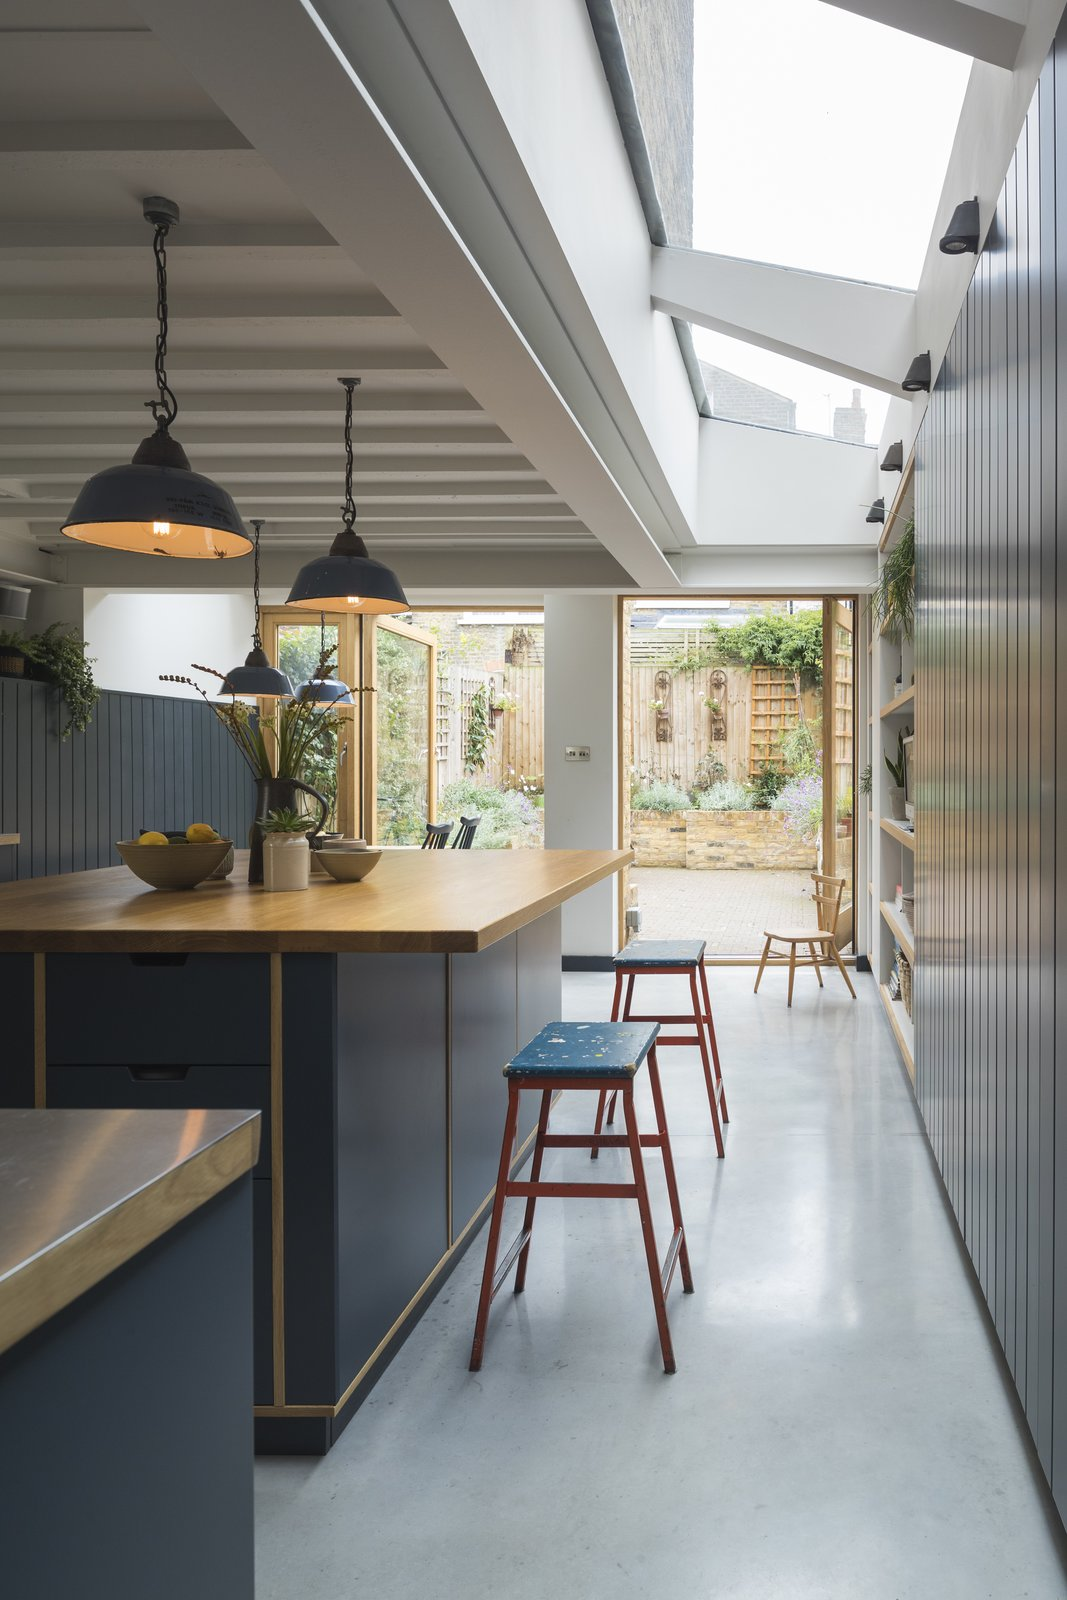 Kitchen, Wood Counter, Concrete Floor, Wood Cabinet, Pendant Lighting, and Ceiling Lighting Skylights dramatically brighten the kitchen.    Photo 6 of 14 in Before & After: A London Home Doubles as a Cheery Work Space